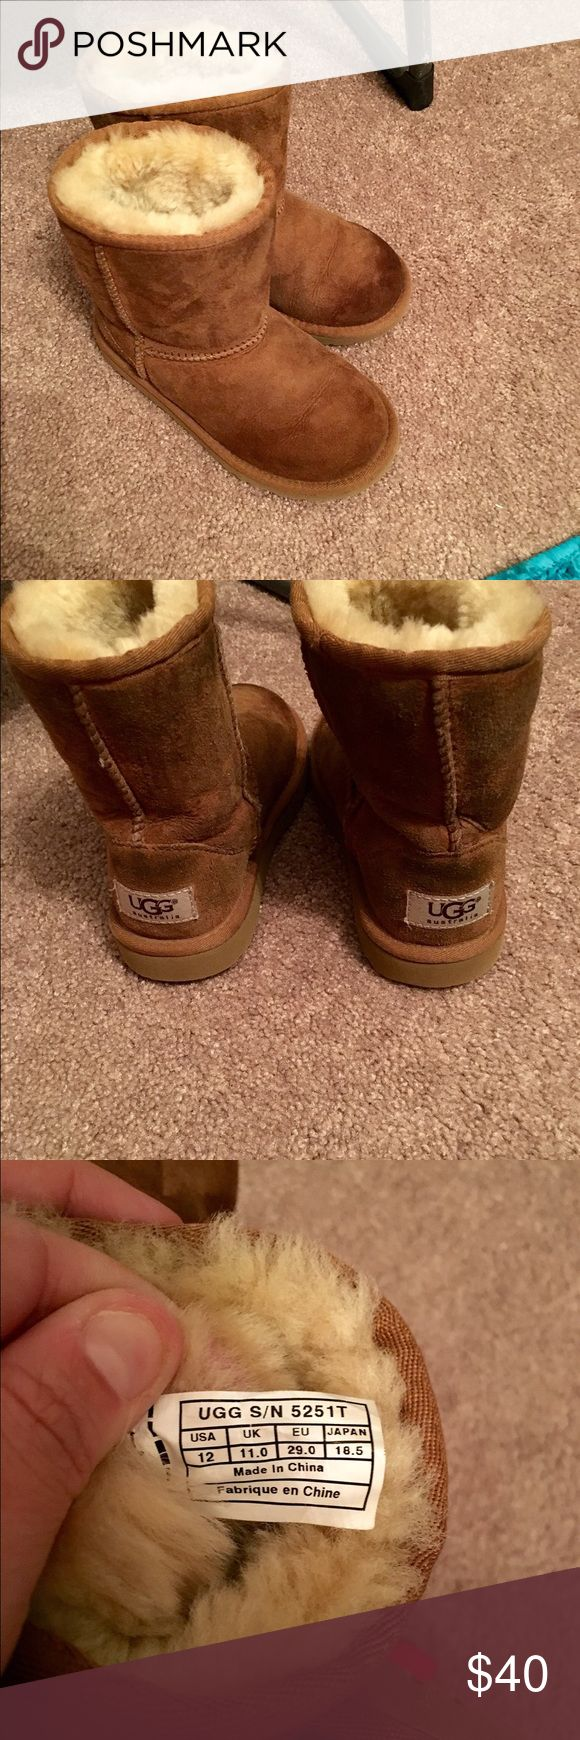 CHILDRENS UGGS CHILDRENS ugg boots size 12.. Shows some wear but not bad! Just need cleaning !! UGG Shoes